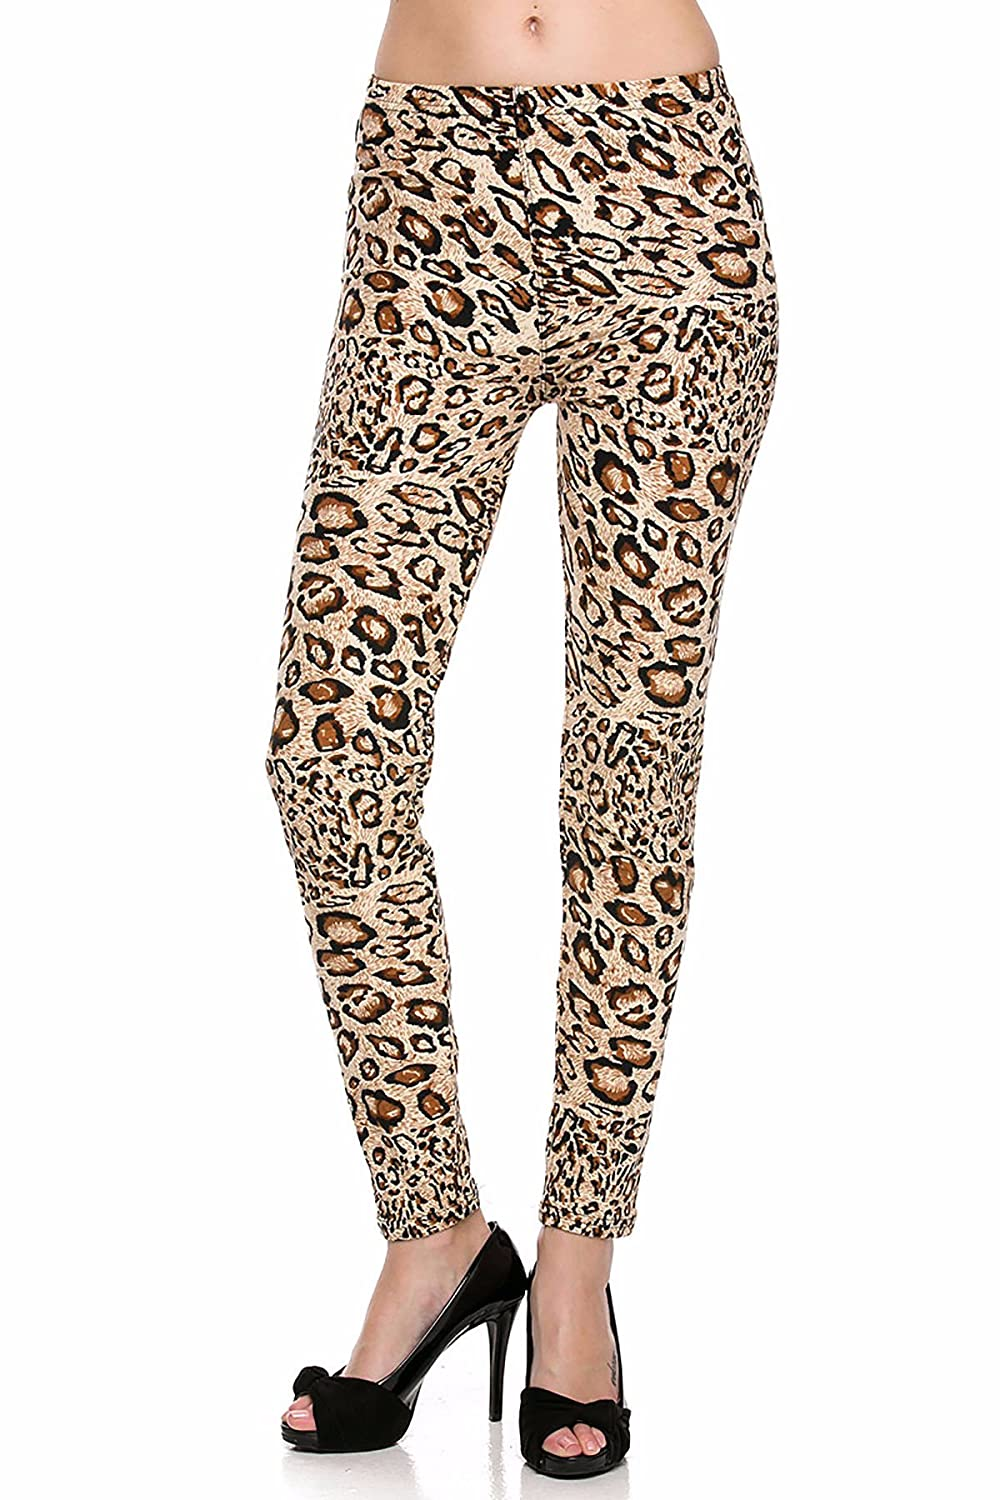 outlet Women\u0027s One size fit Brushed Leopard Animal Print Ankle Leggings  US-F094